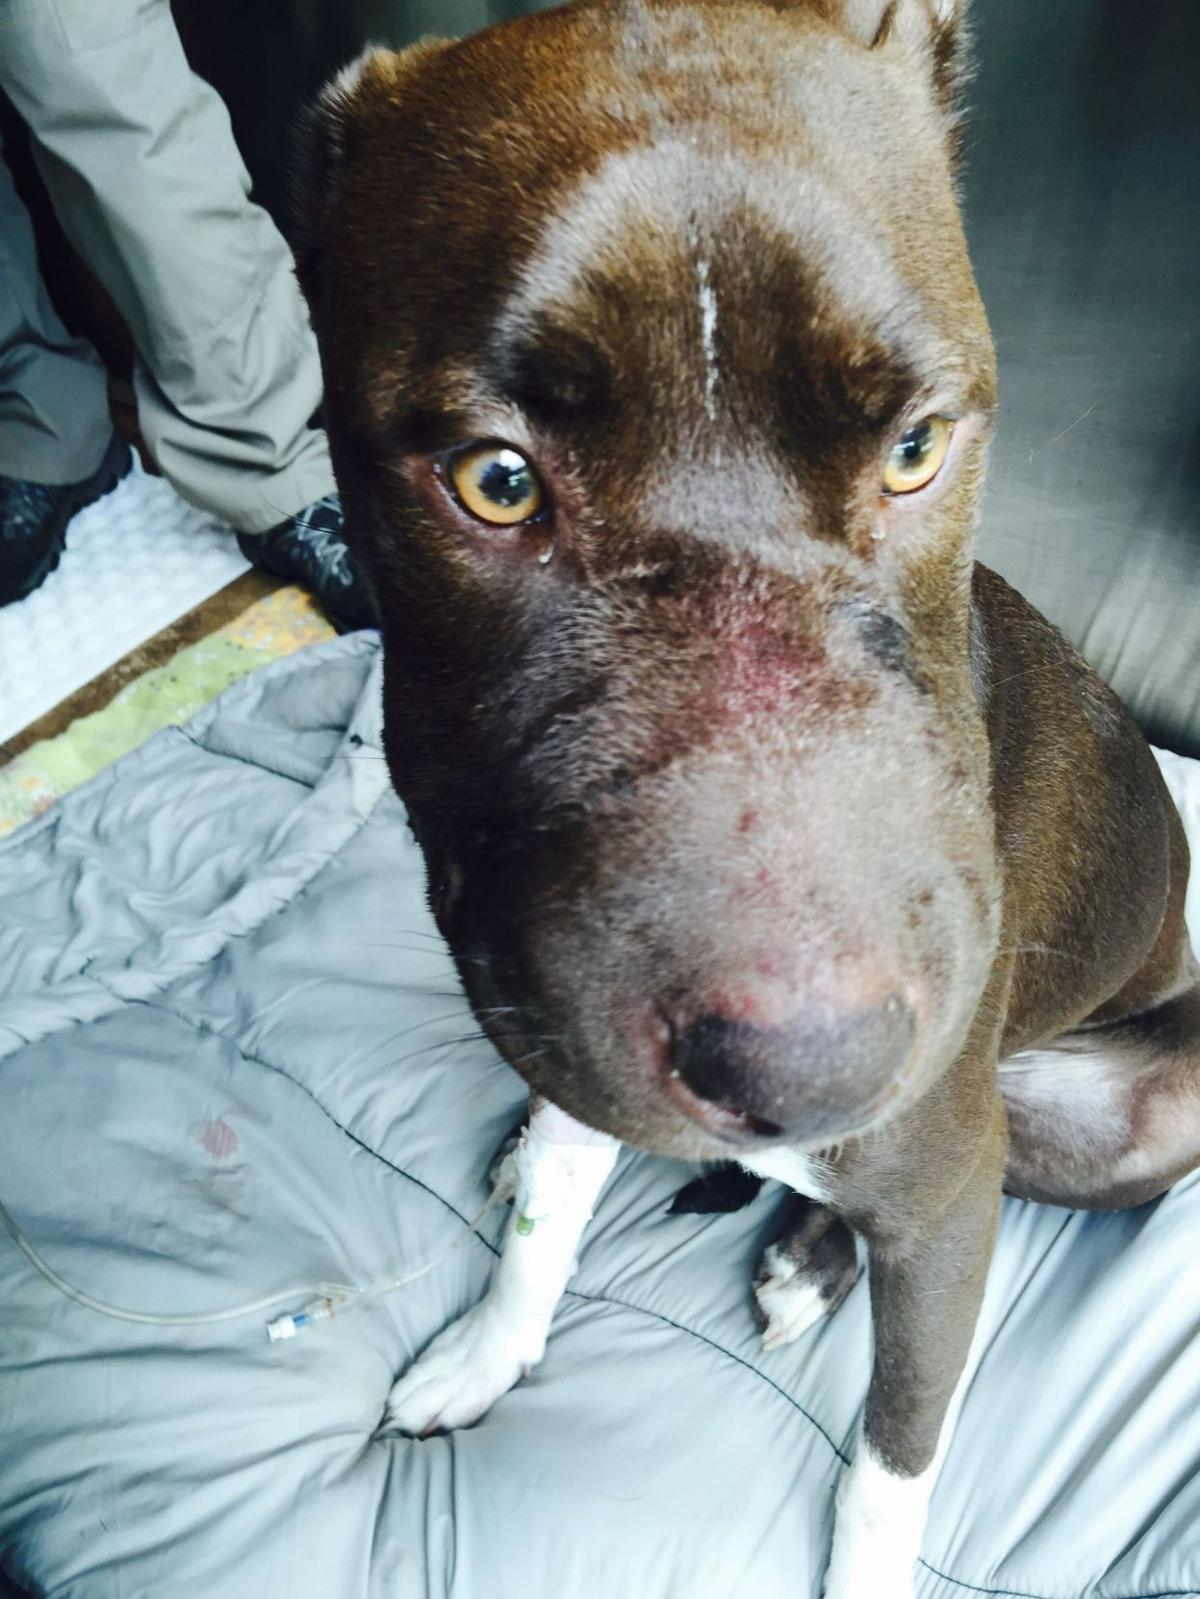 Reward to find person who taped dog's mouth shut grows to $6,000